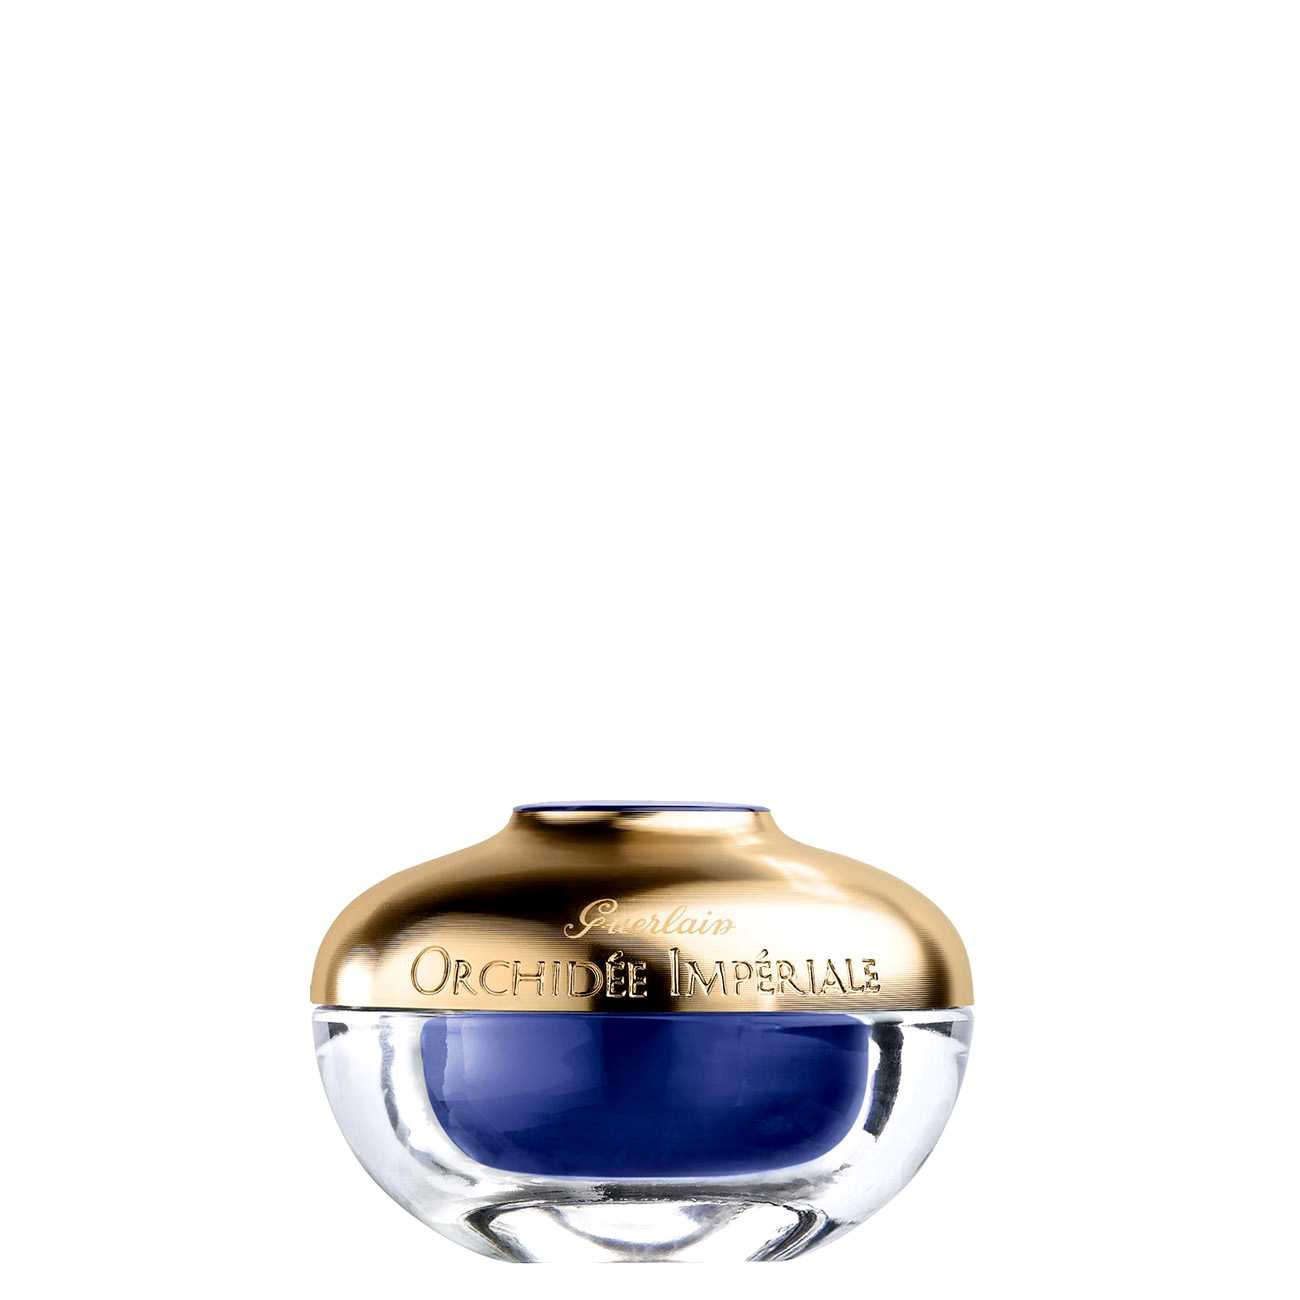 ORCHIDEE IMPERIALE EYES AND LIP CREAM 15 ML imagine produs